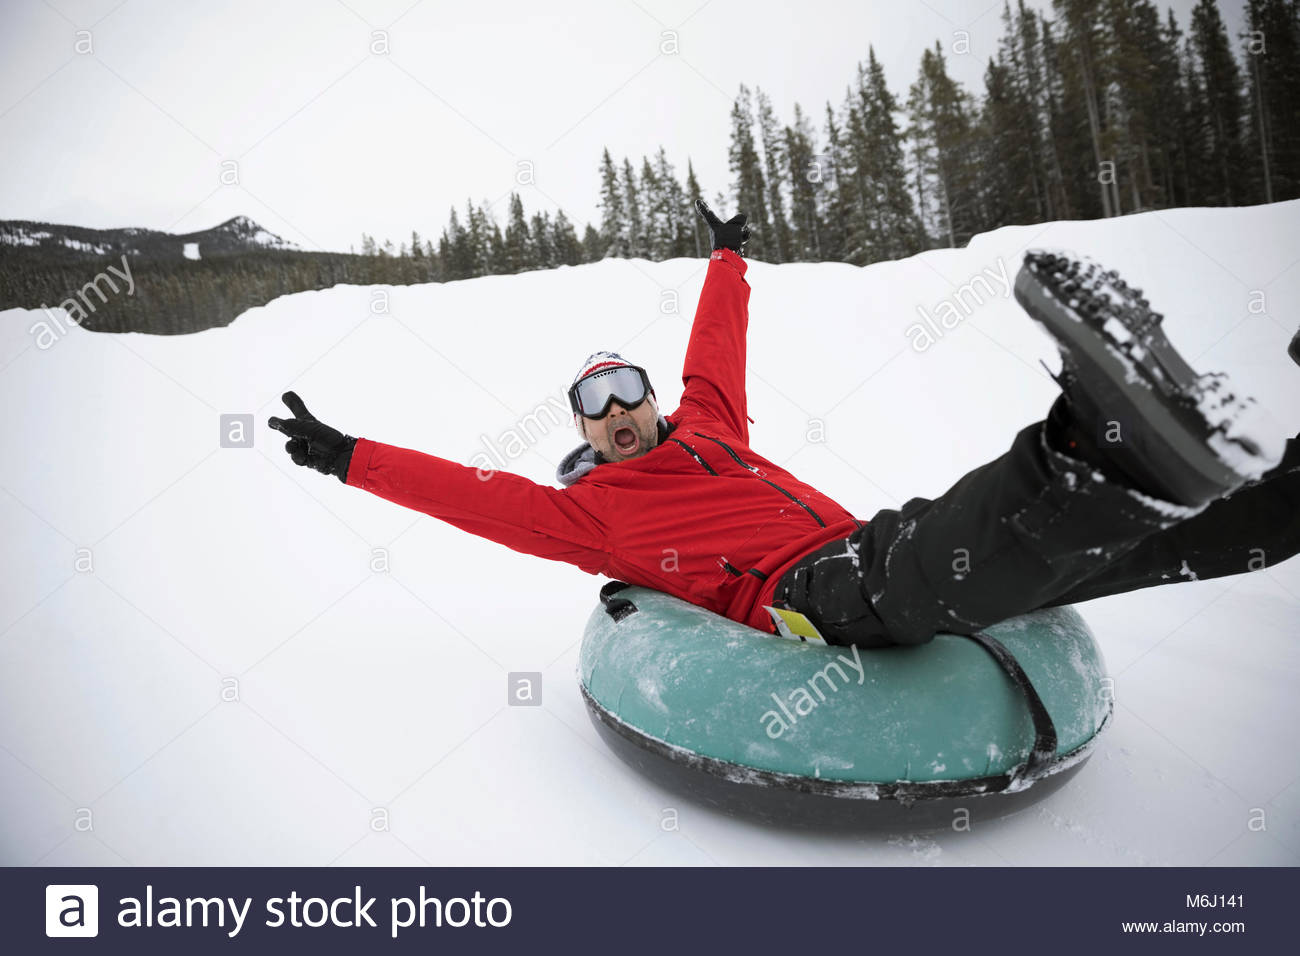 Portrait playful, exuberant man inner tubing in snow at tube park - Stock Image